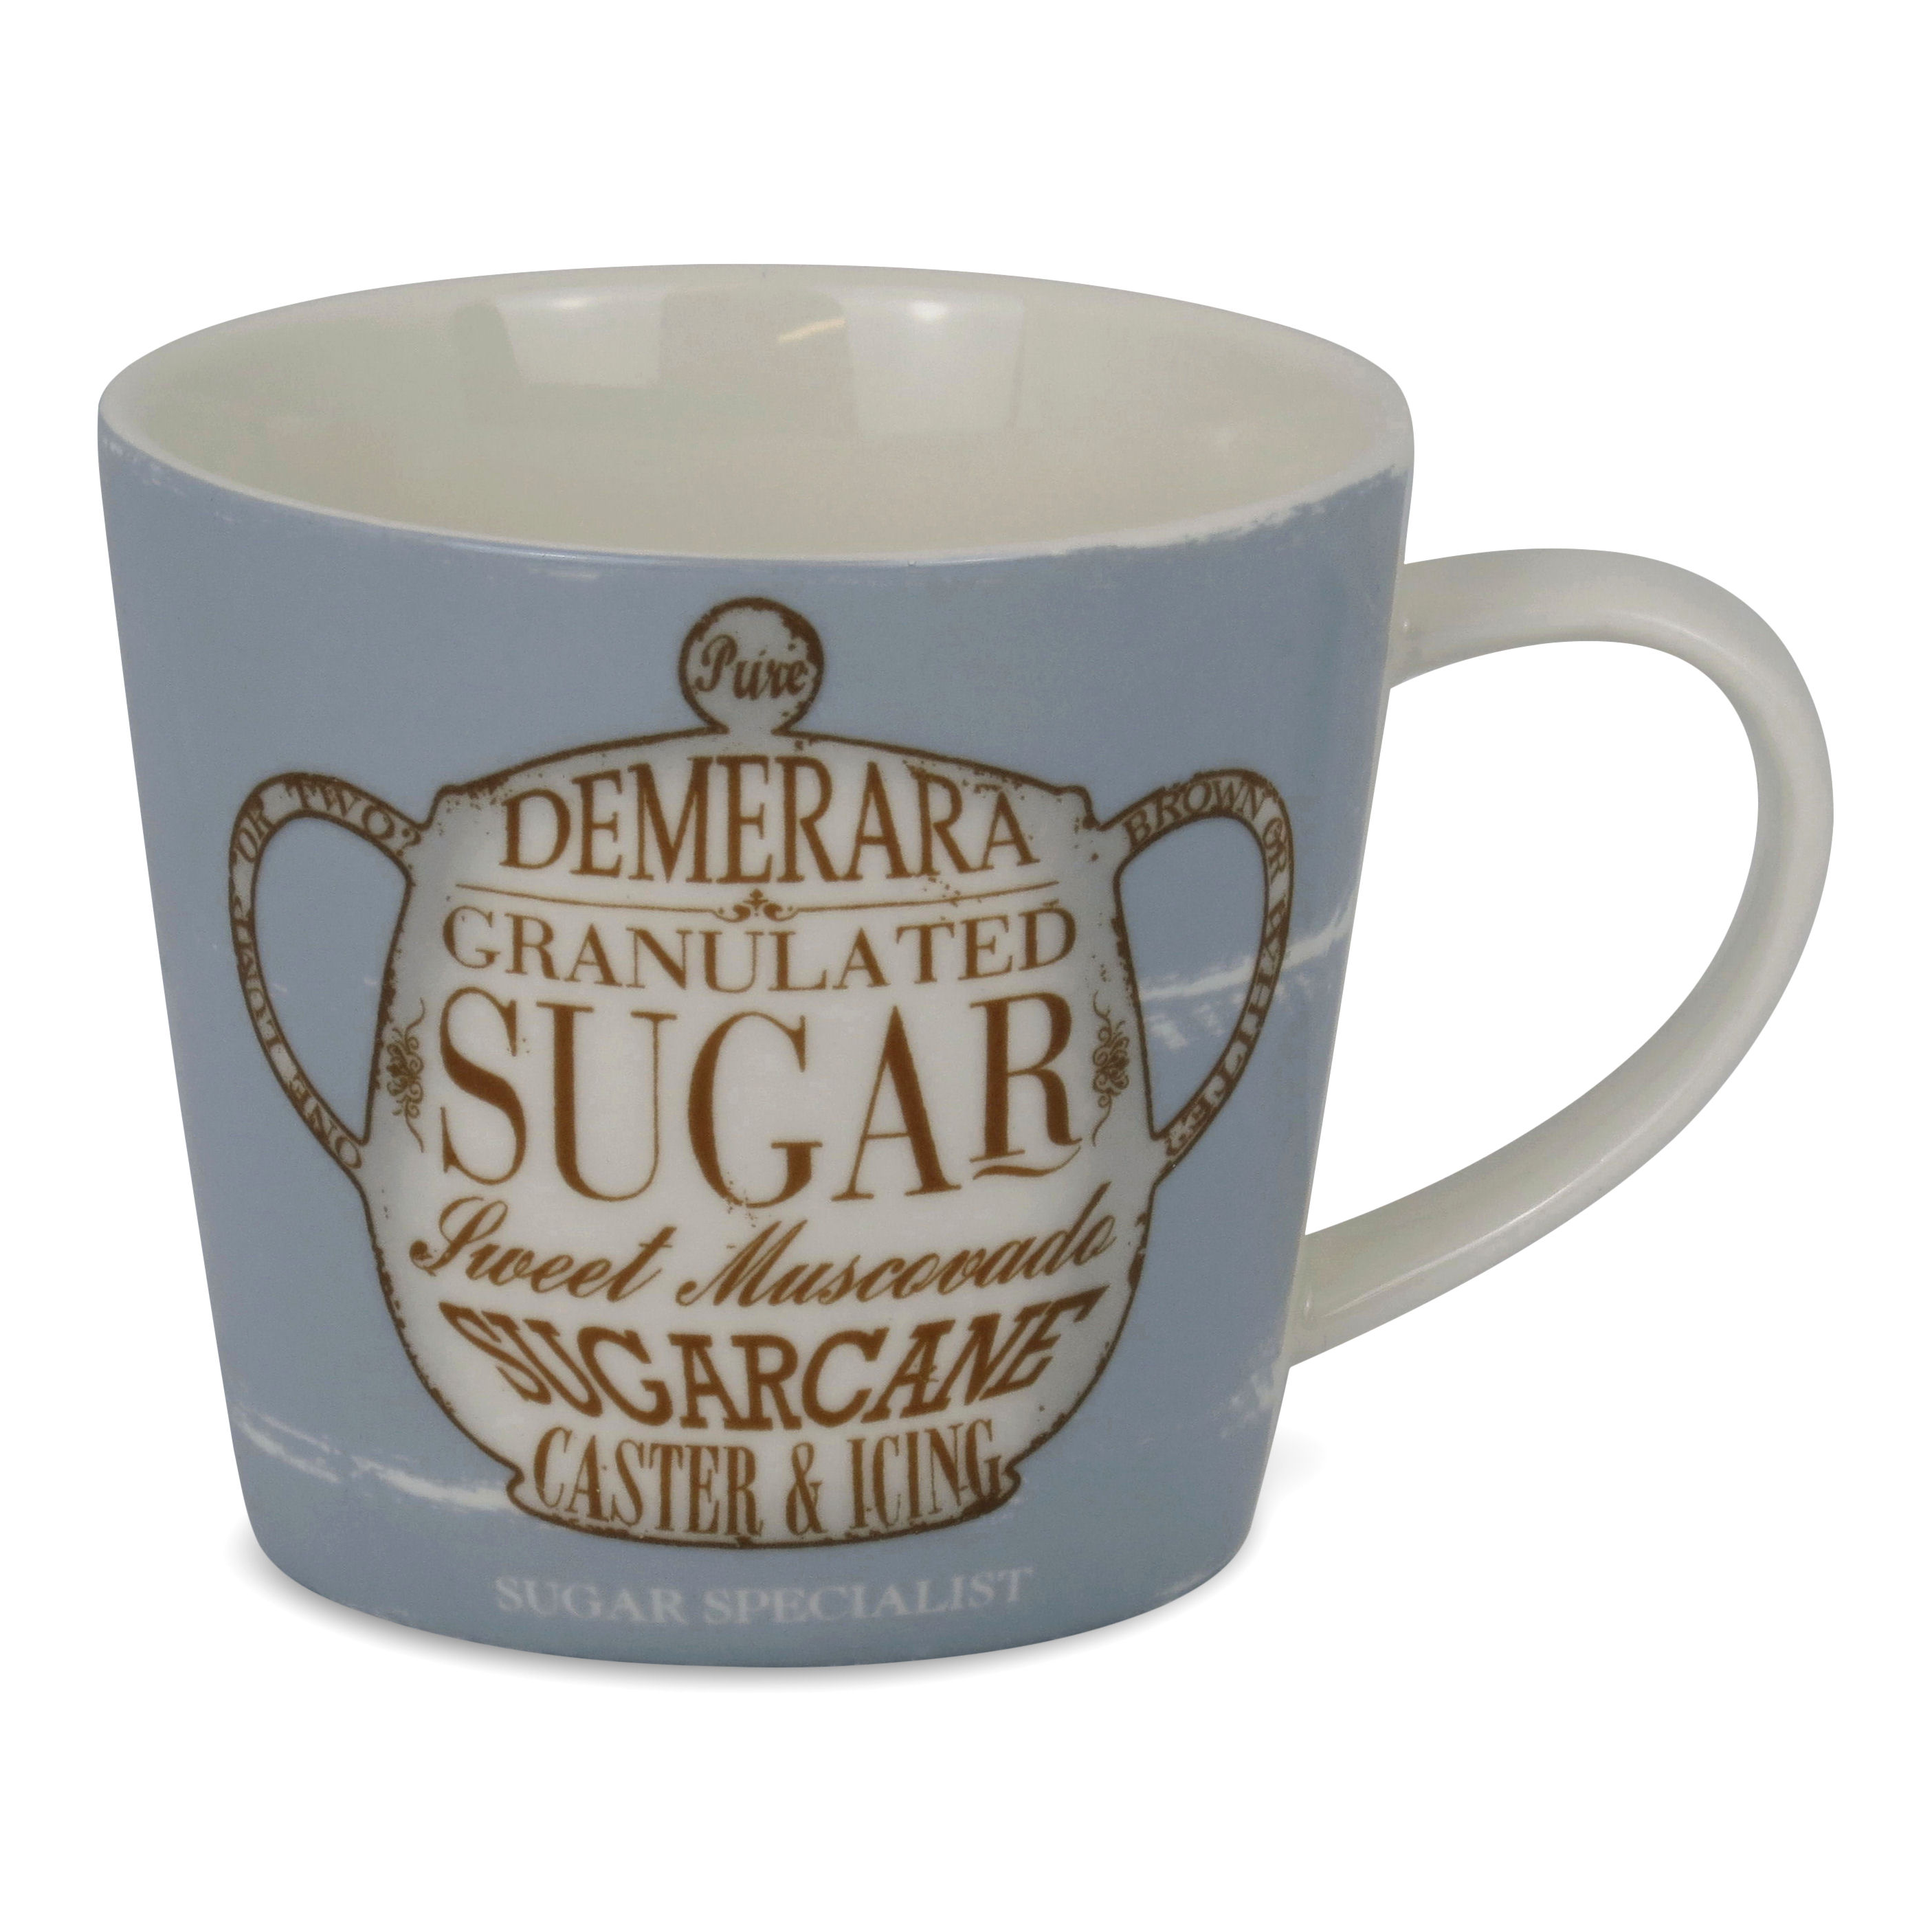 The Sugar Specialist Porcelain Mug